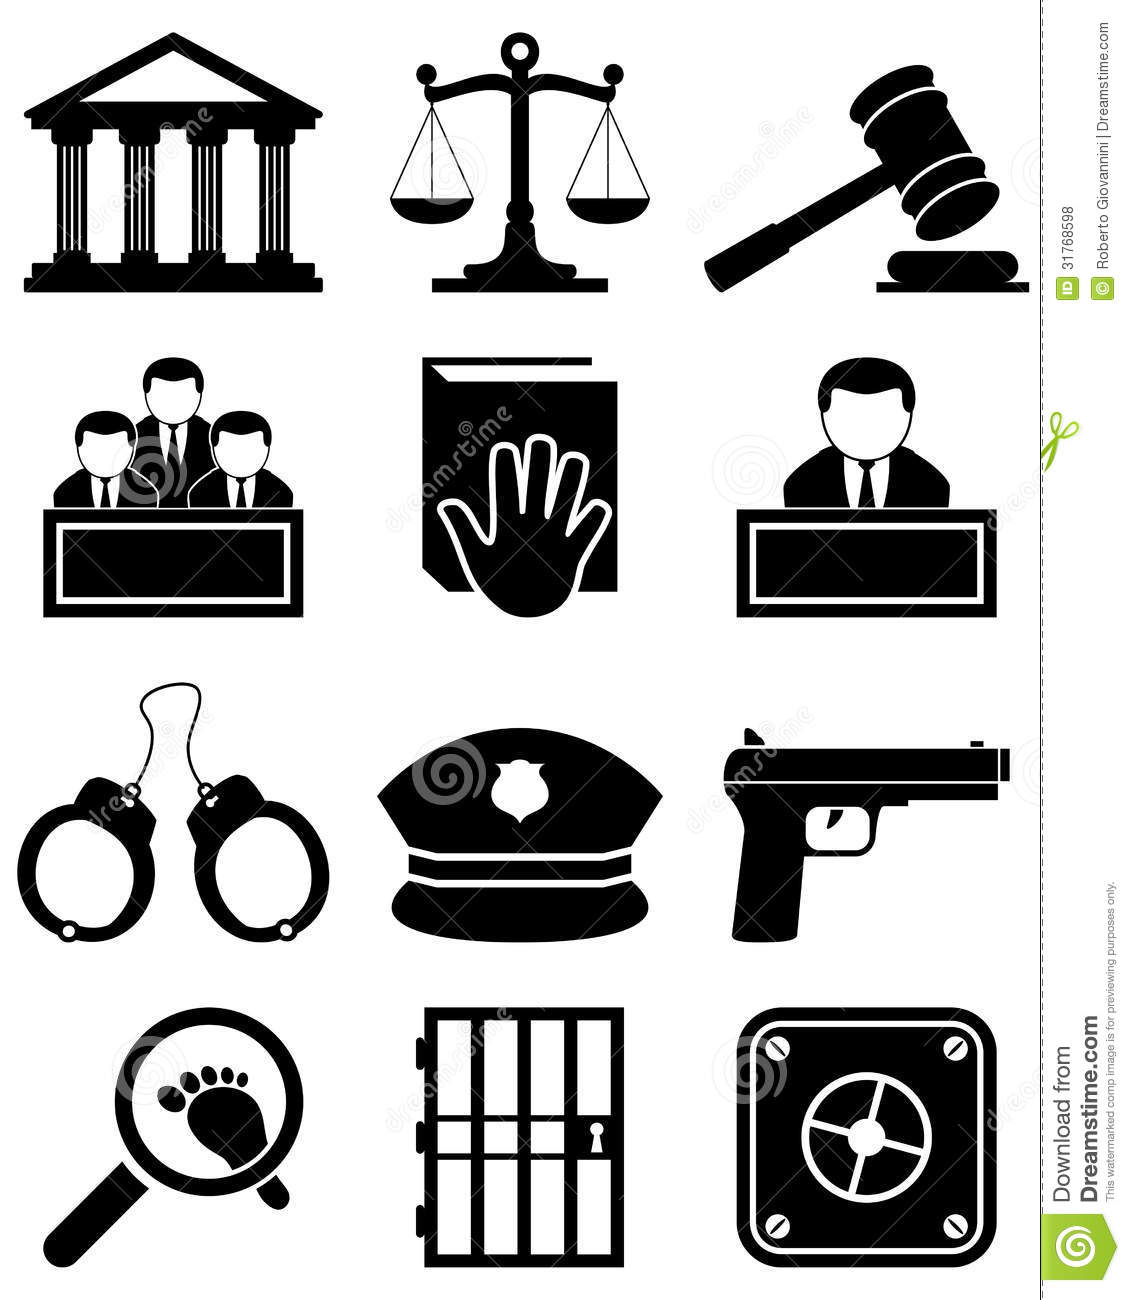 Justice Law Black Amp White Icons Stock Vector